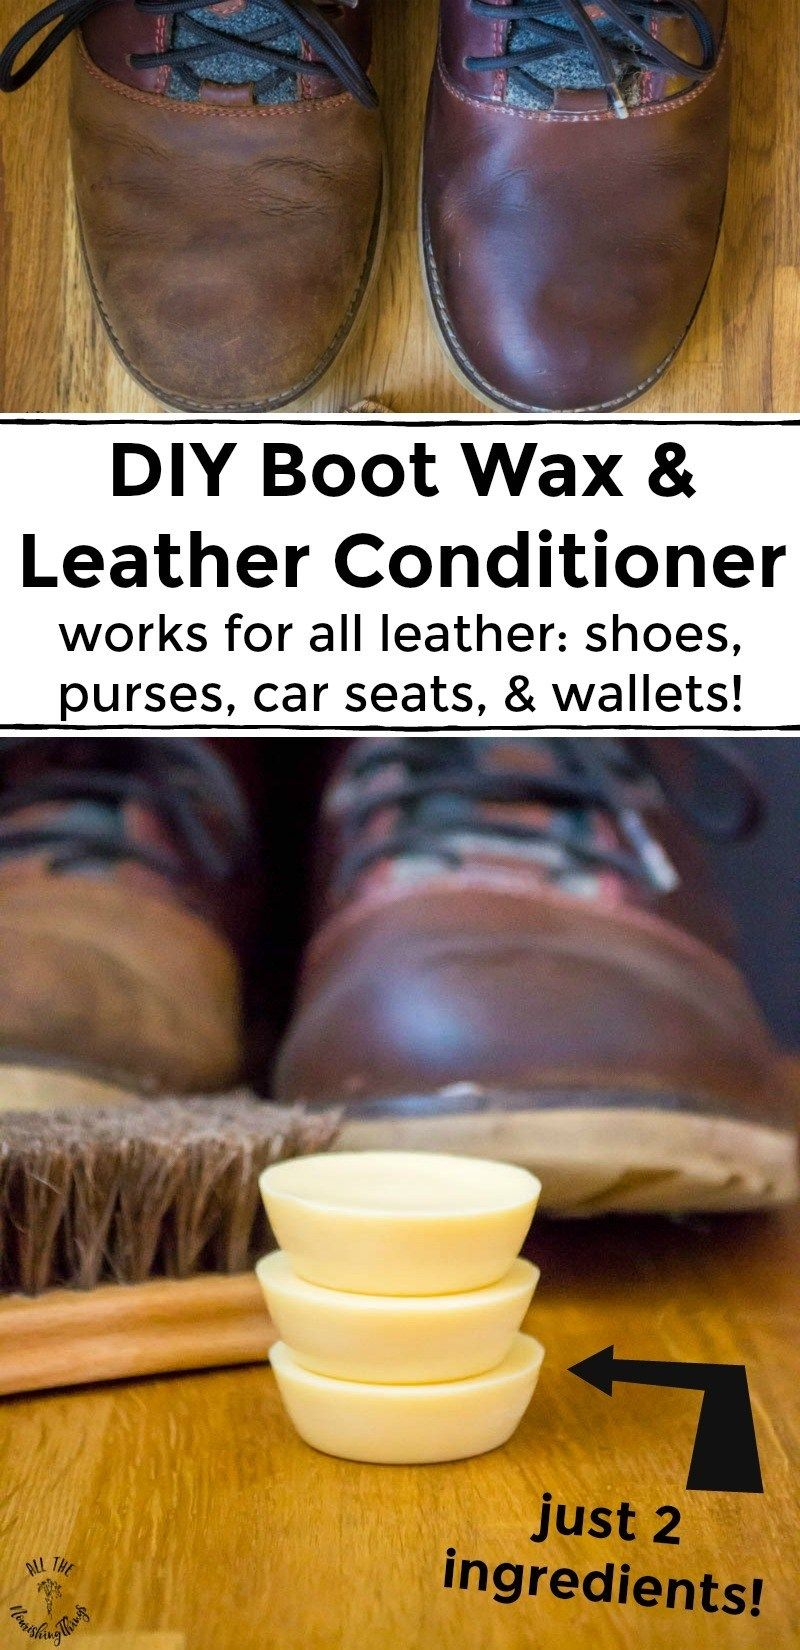 Diy Boot Wax Leather Conditioner Works For All Leather Shoes Purses Wallets Car Seats Leather Conditioner Diy Leather Shoes Diy Leather Conditioner